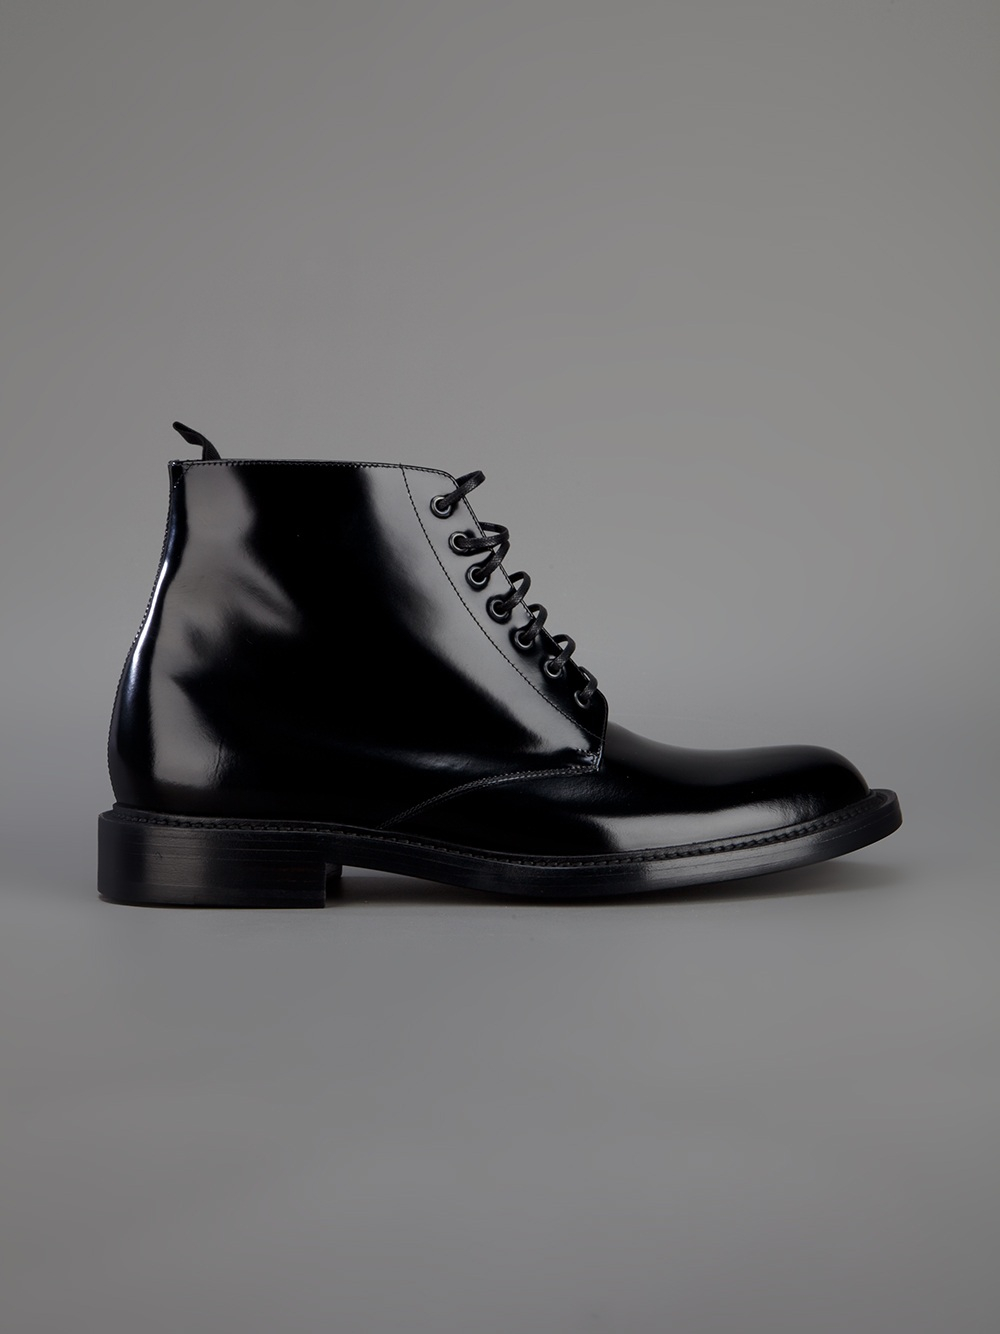 Saint Laurent Lace Up Army Boot In Black For Men Lyst